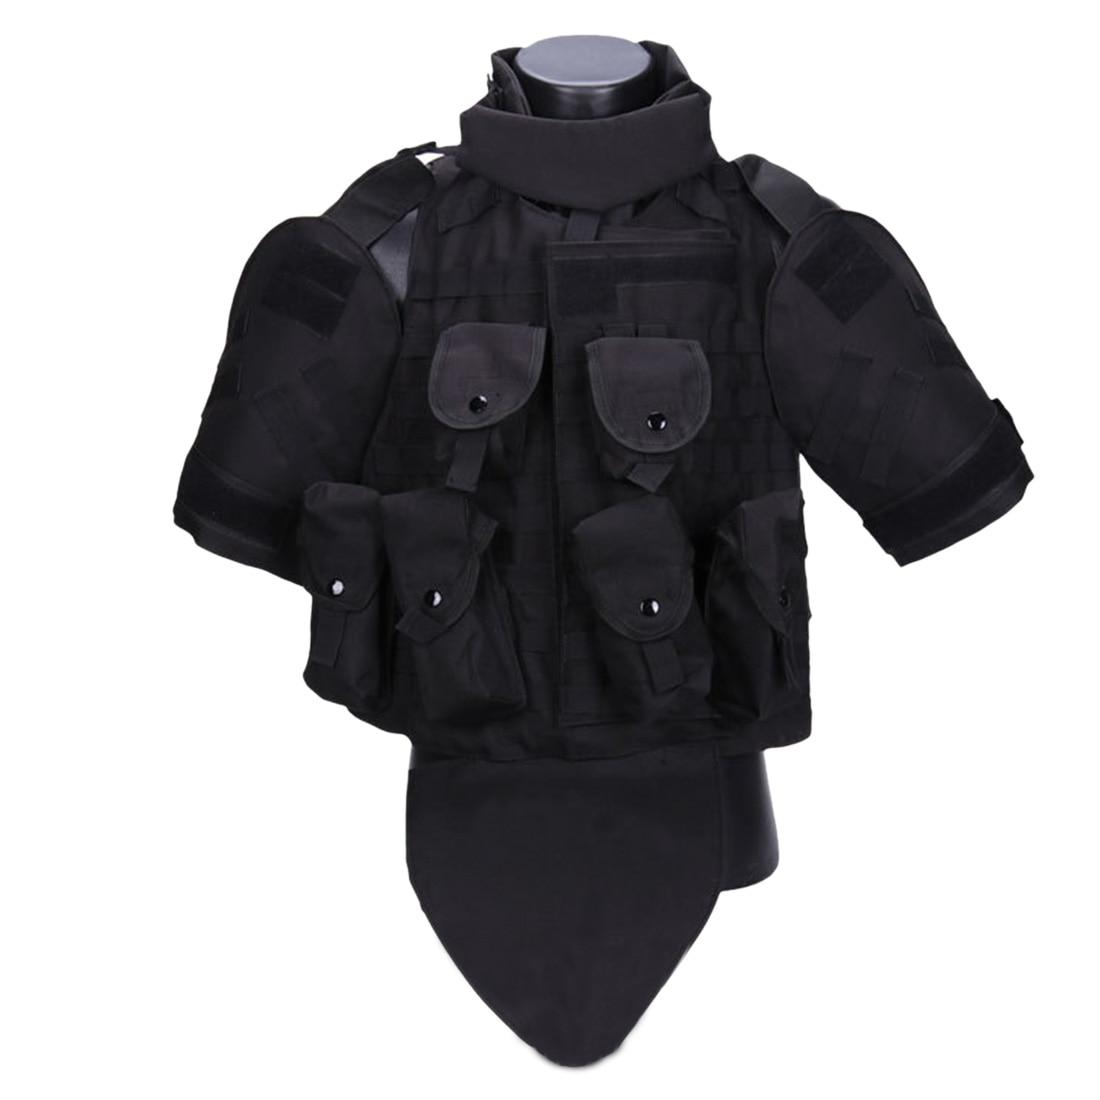 [해외]Wolf Slaves Interceptor Modular OTV Body Armor Tactics Vest Outdoor Molle Hunting Vest for Airsoft Paintball Protector 2019/Wolf Slaves Intercepto